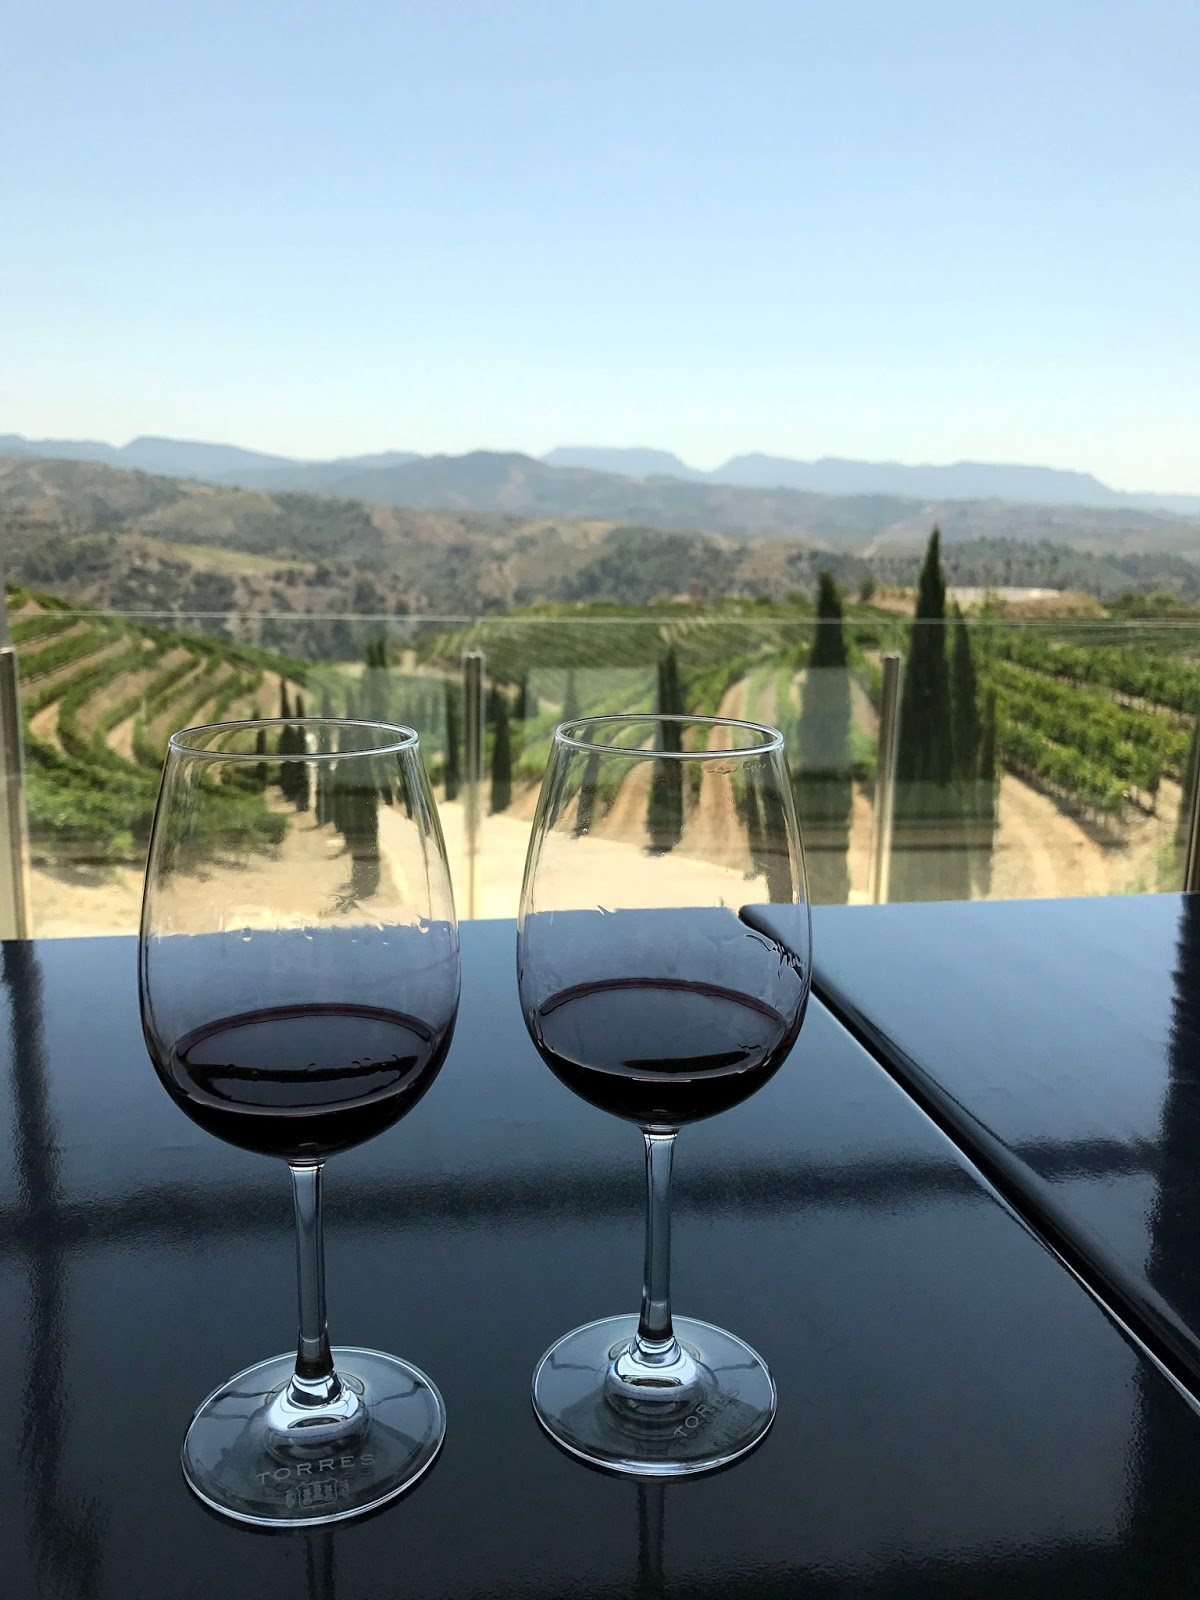 Stitch & Bear - Torres Priorat - Tasting overlooking the vineyards